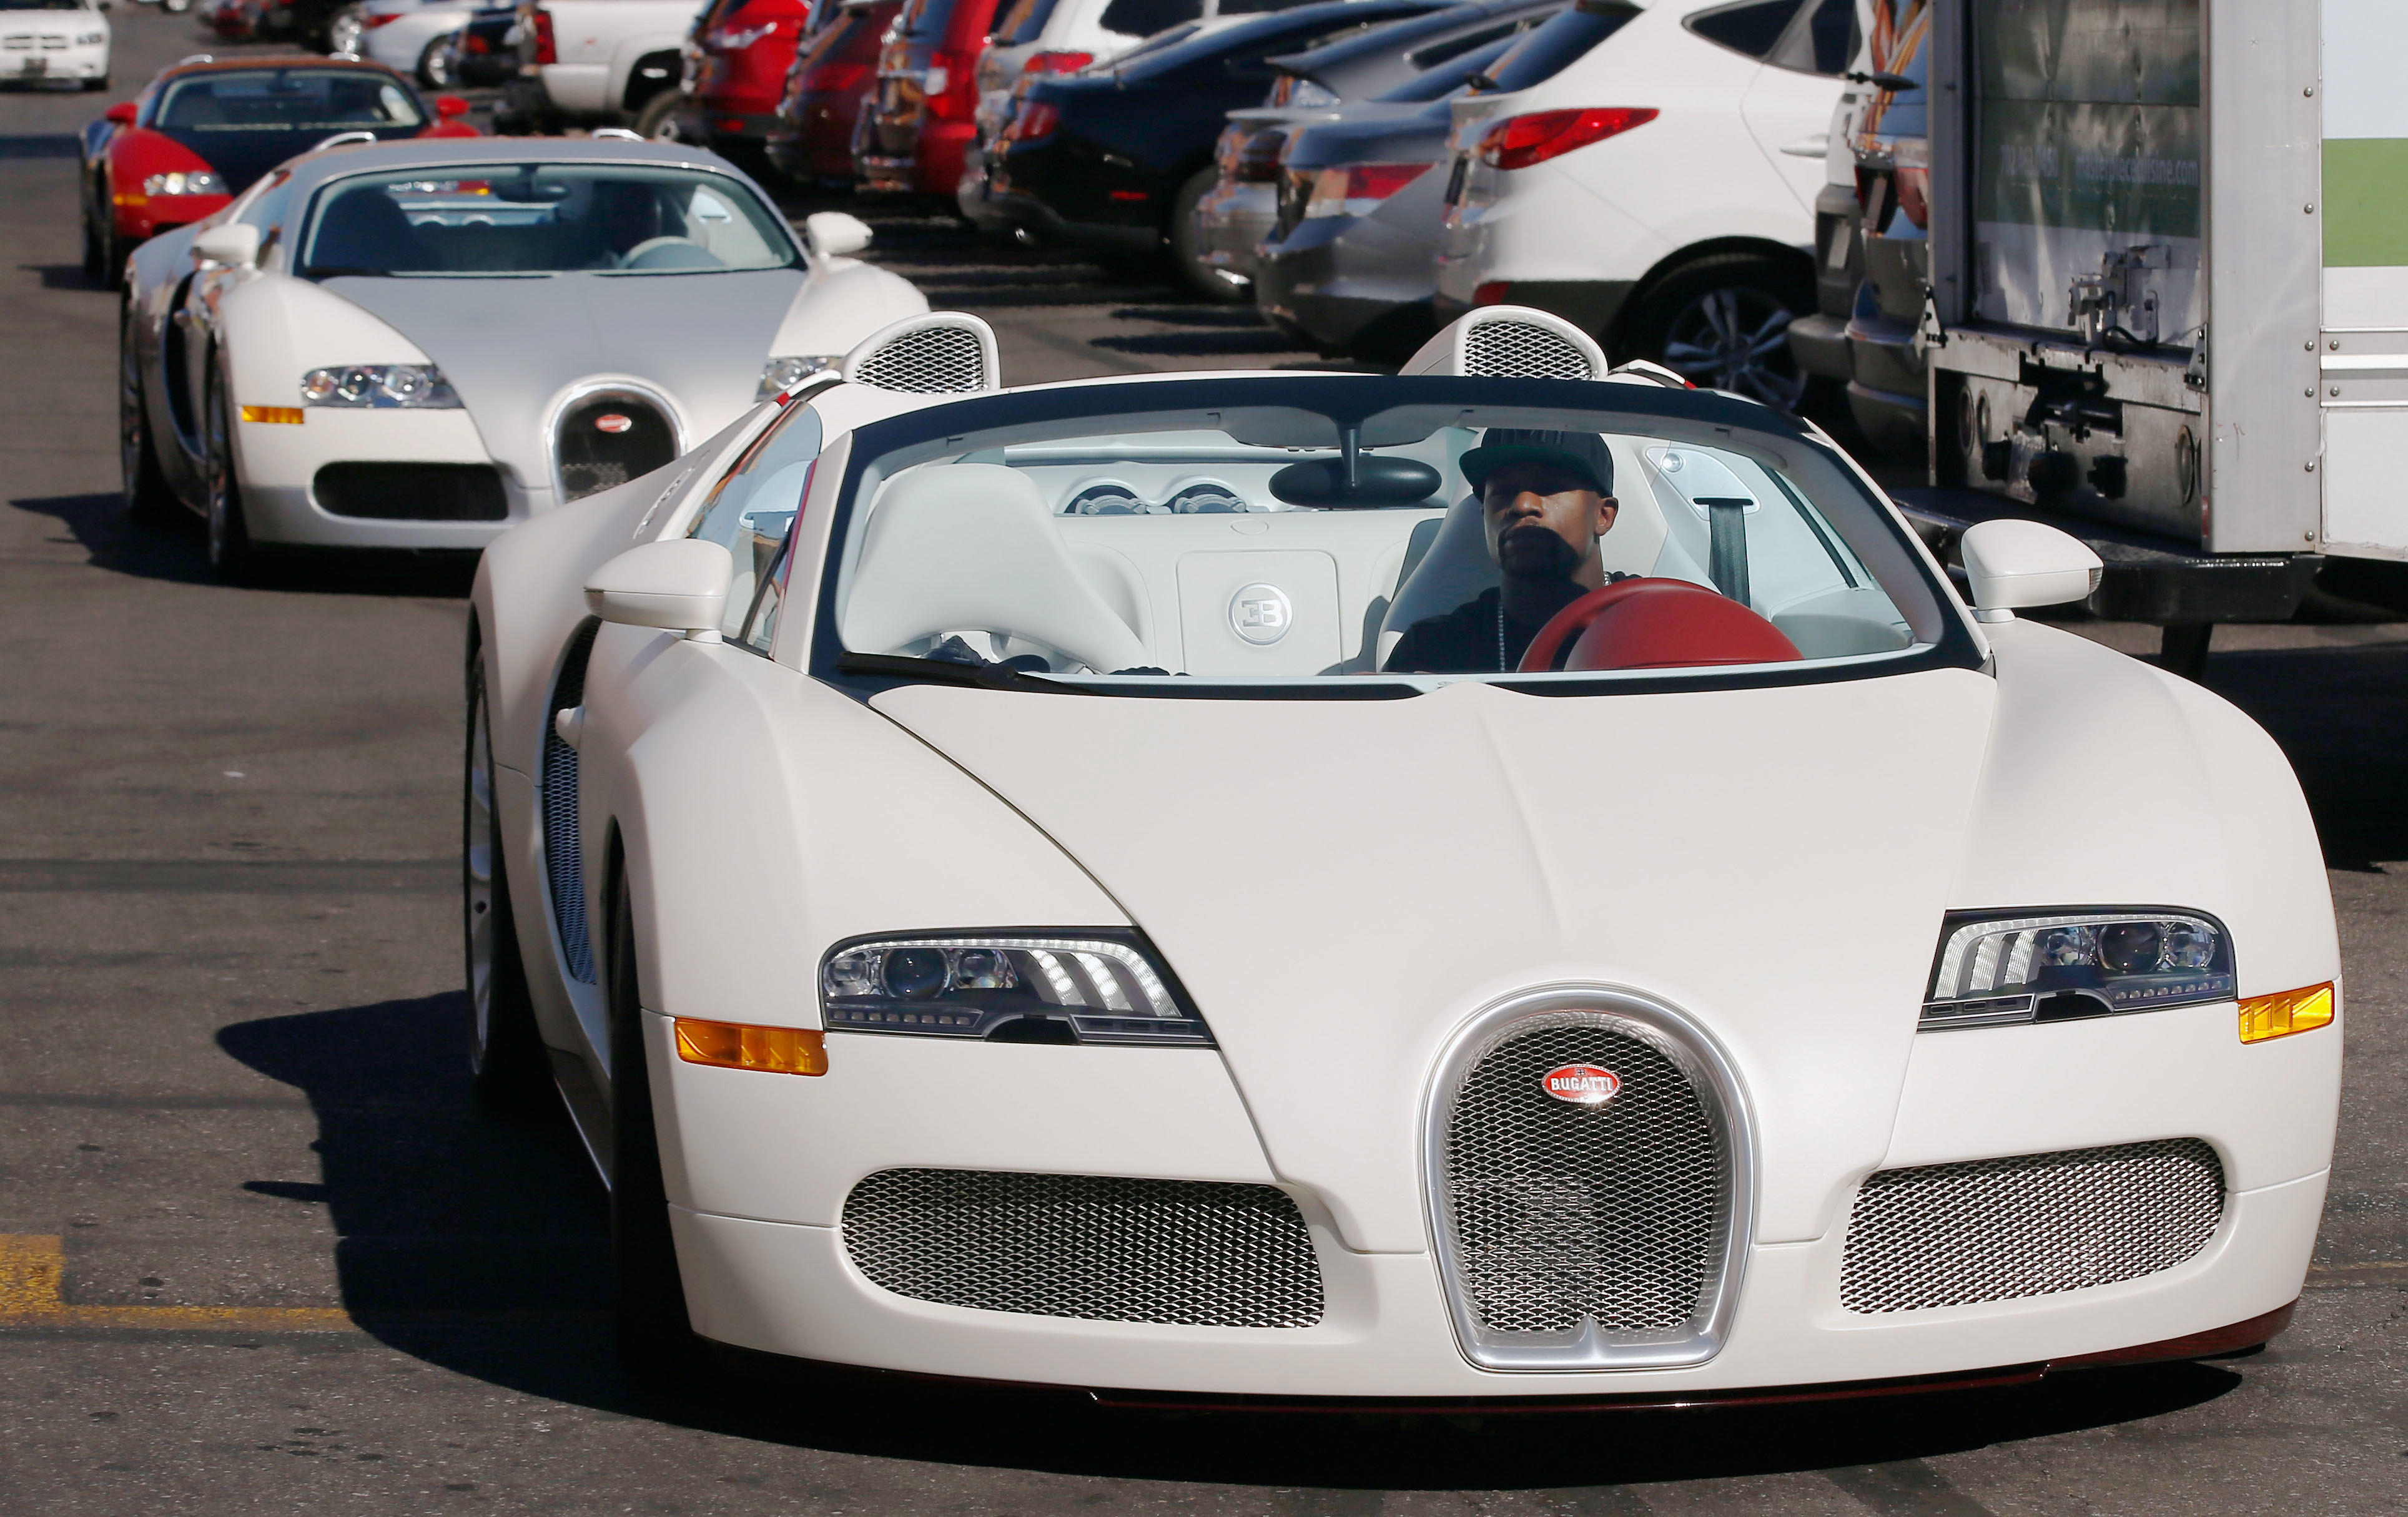 Boxer Floyd Mayweather Jr. (L) arrives in his Bugatti for a work out at the Mayweather Boxing Club on September 2, 2014 in Las Vegas, Nevada.